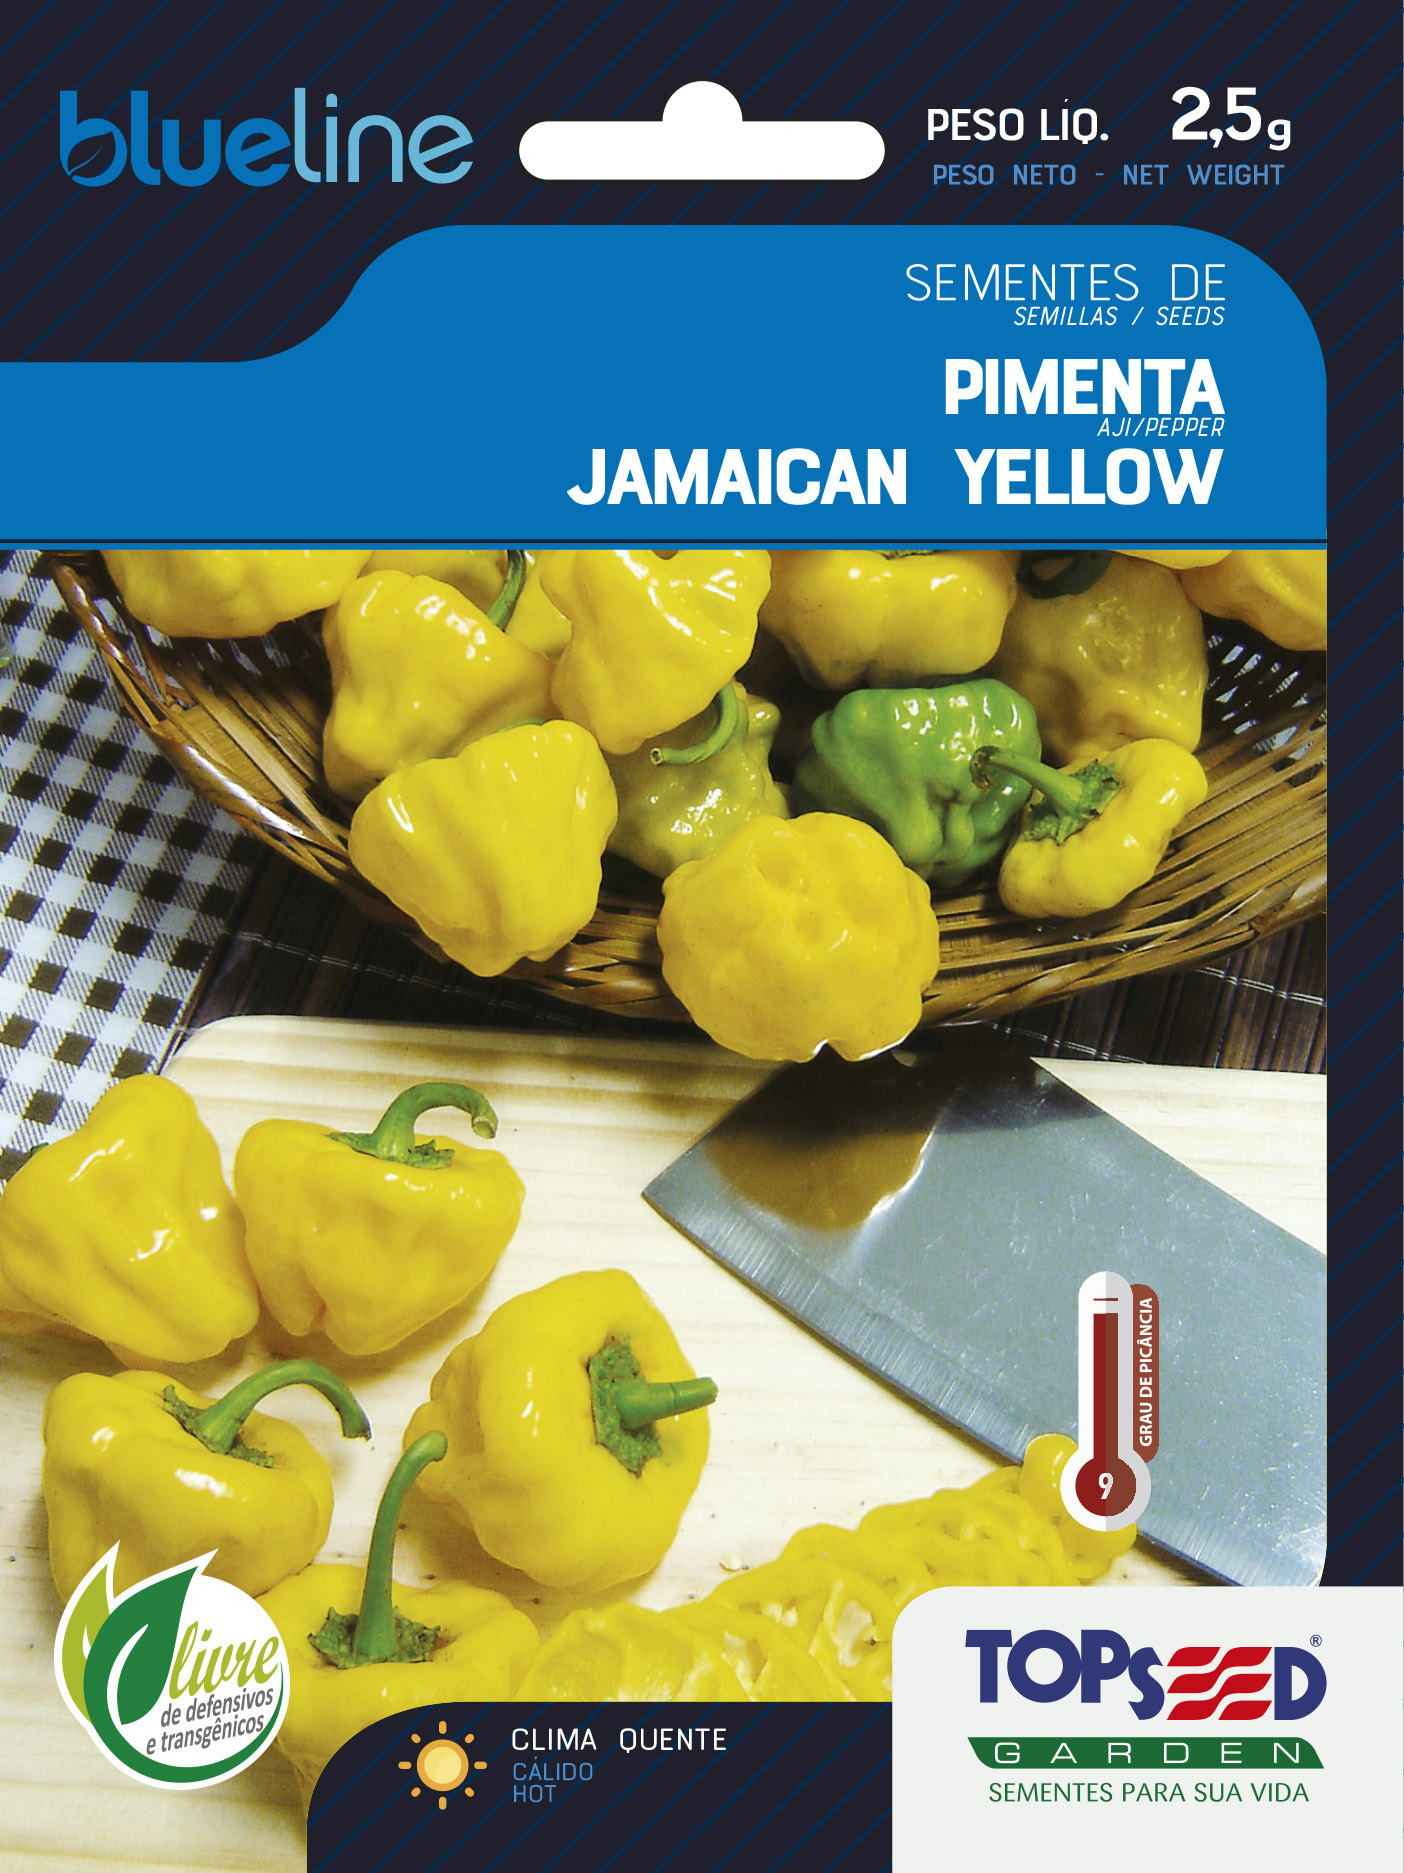 PIMENTA JAMAICAN YELLOW